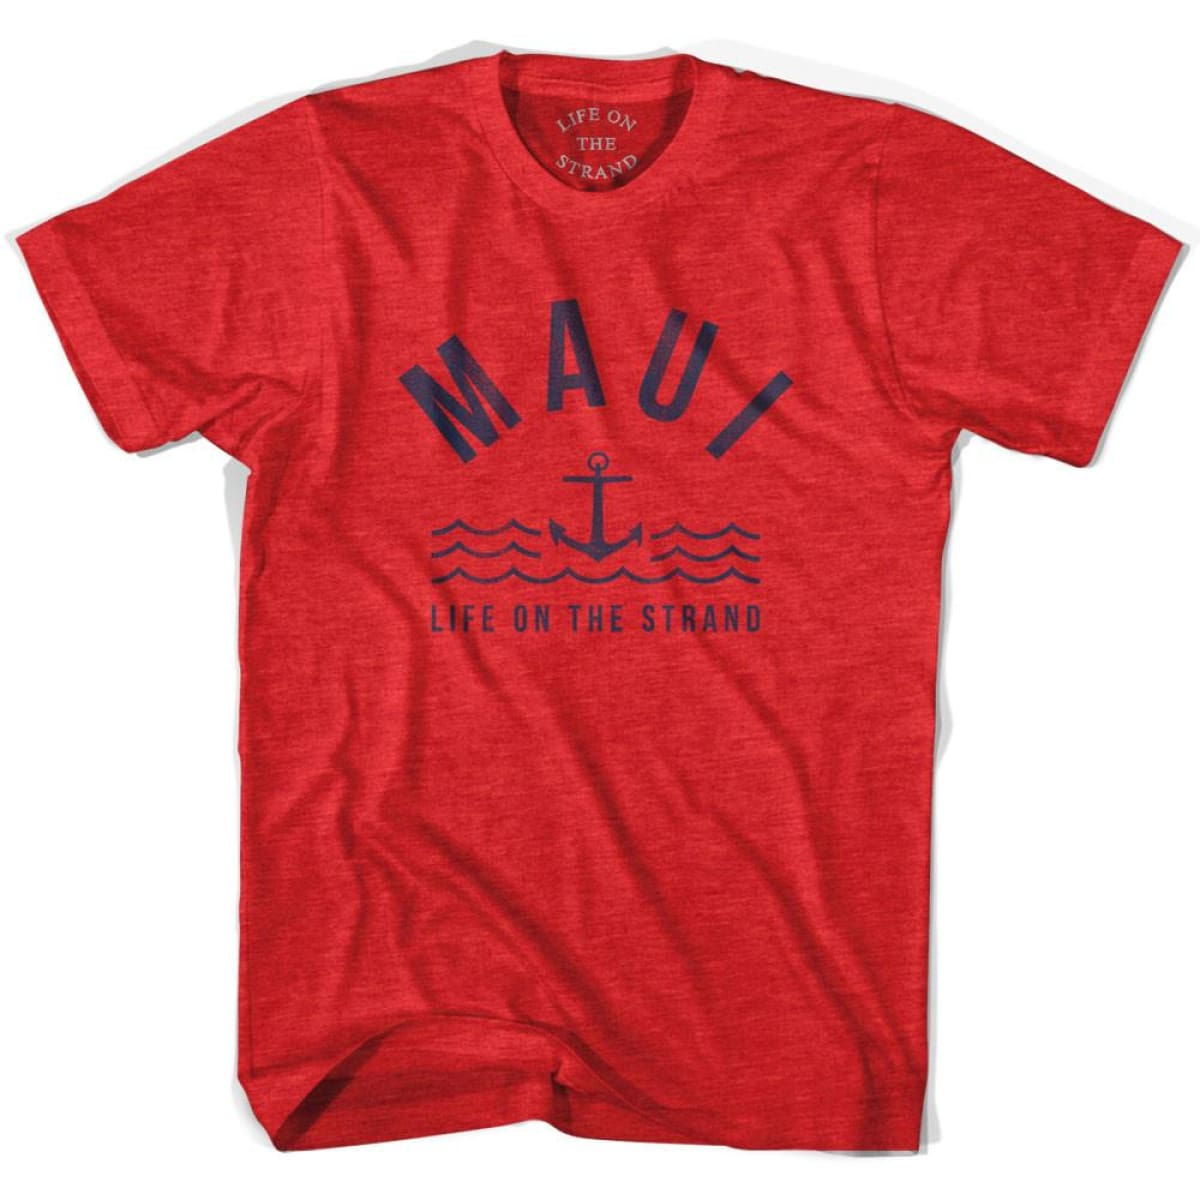 Maui Anchor Life on the Strand T-shirt - Heather Red / Adult Small - Life on the Strand Anchor